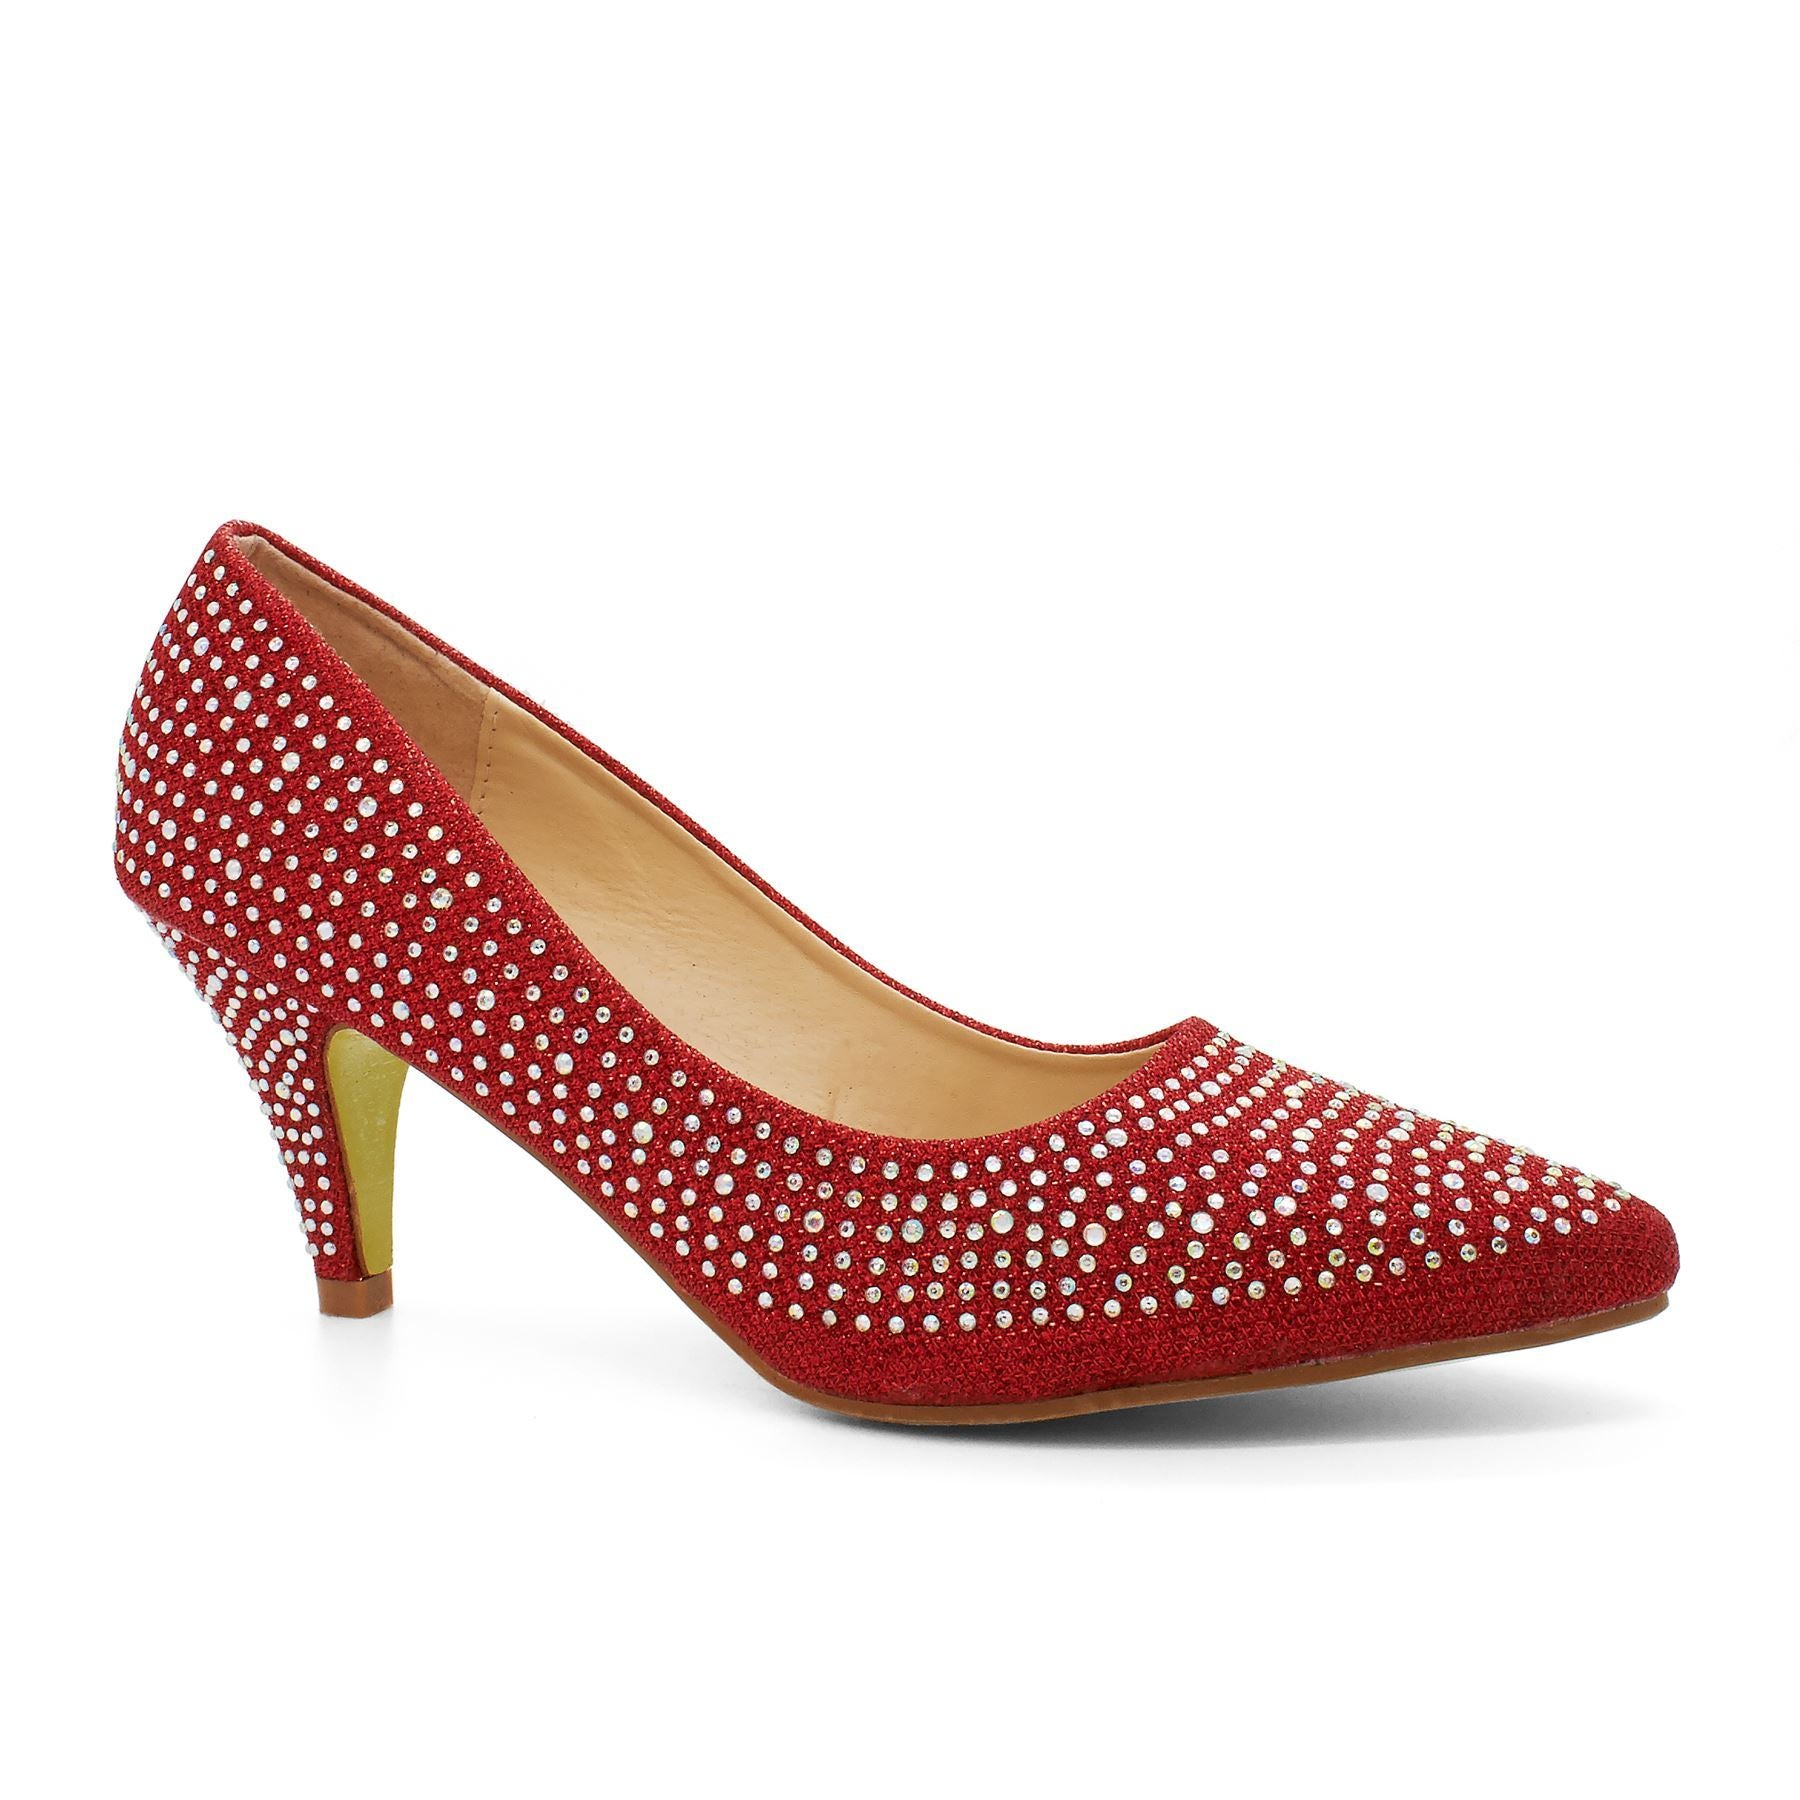 Red Pointed Toe Heeled Court Shoe